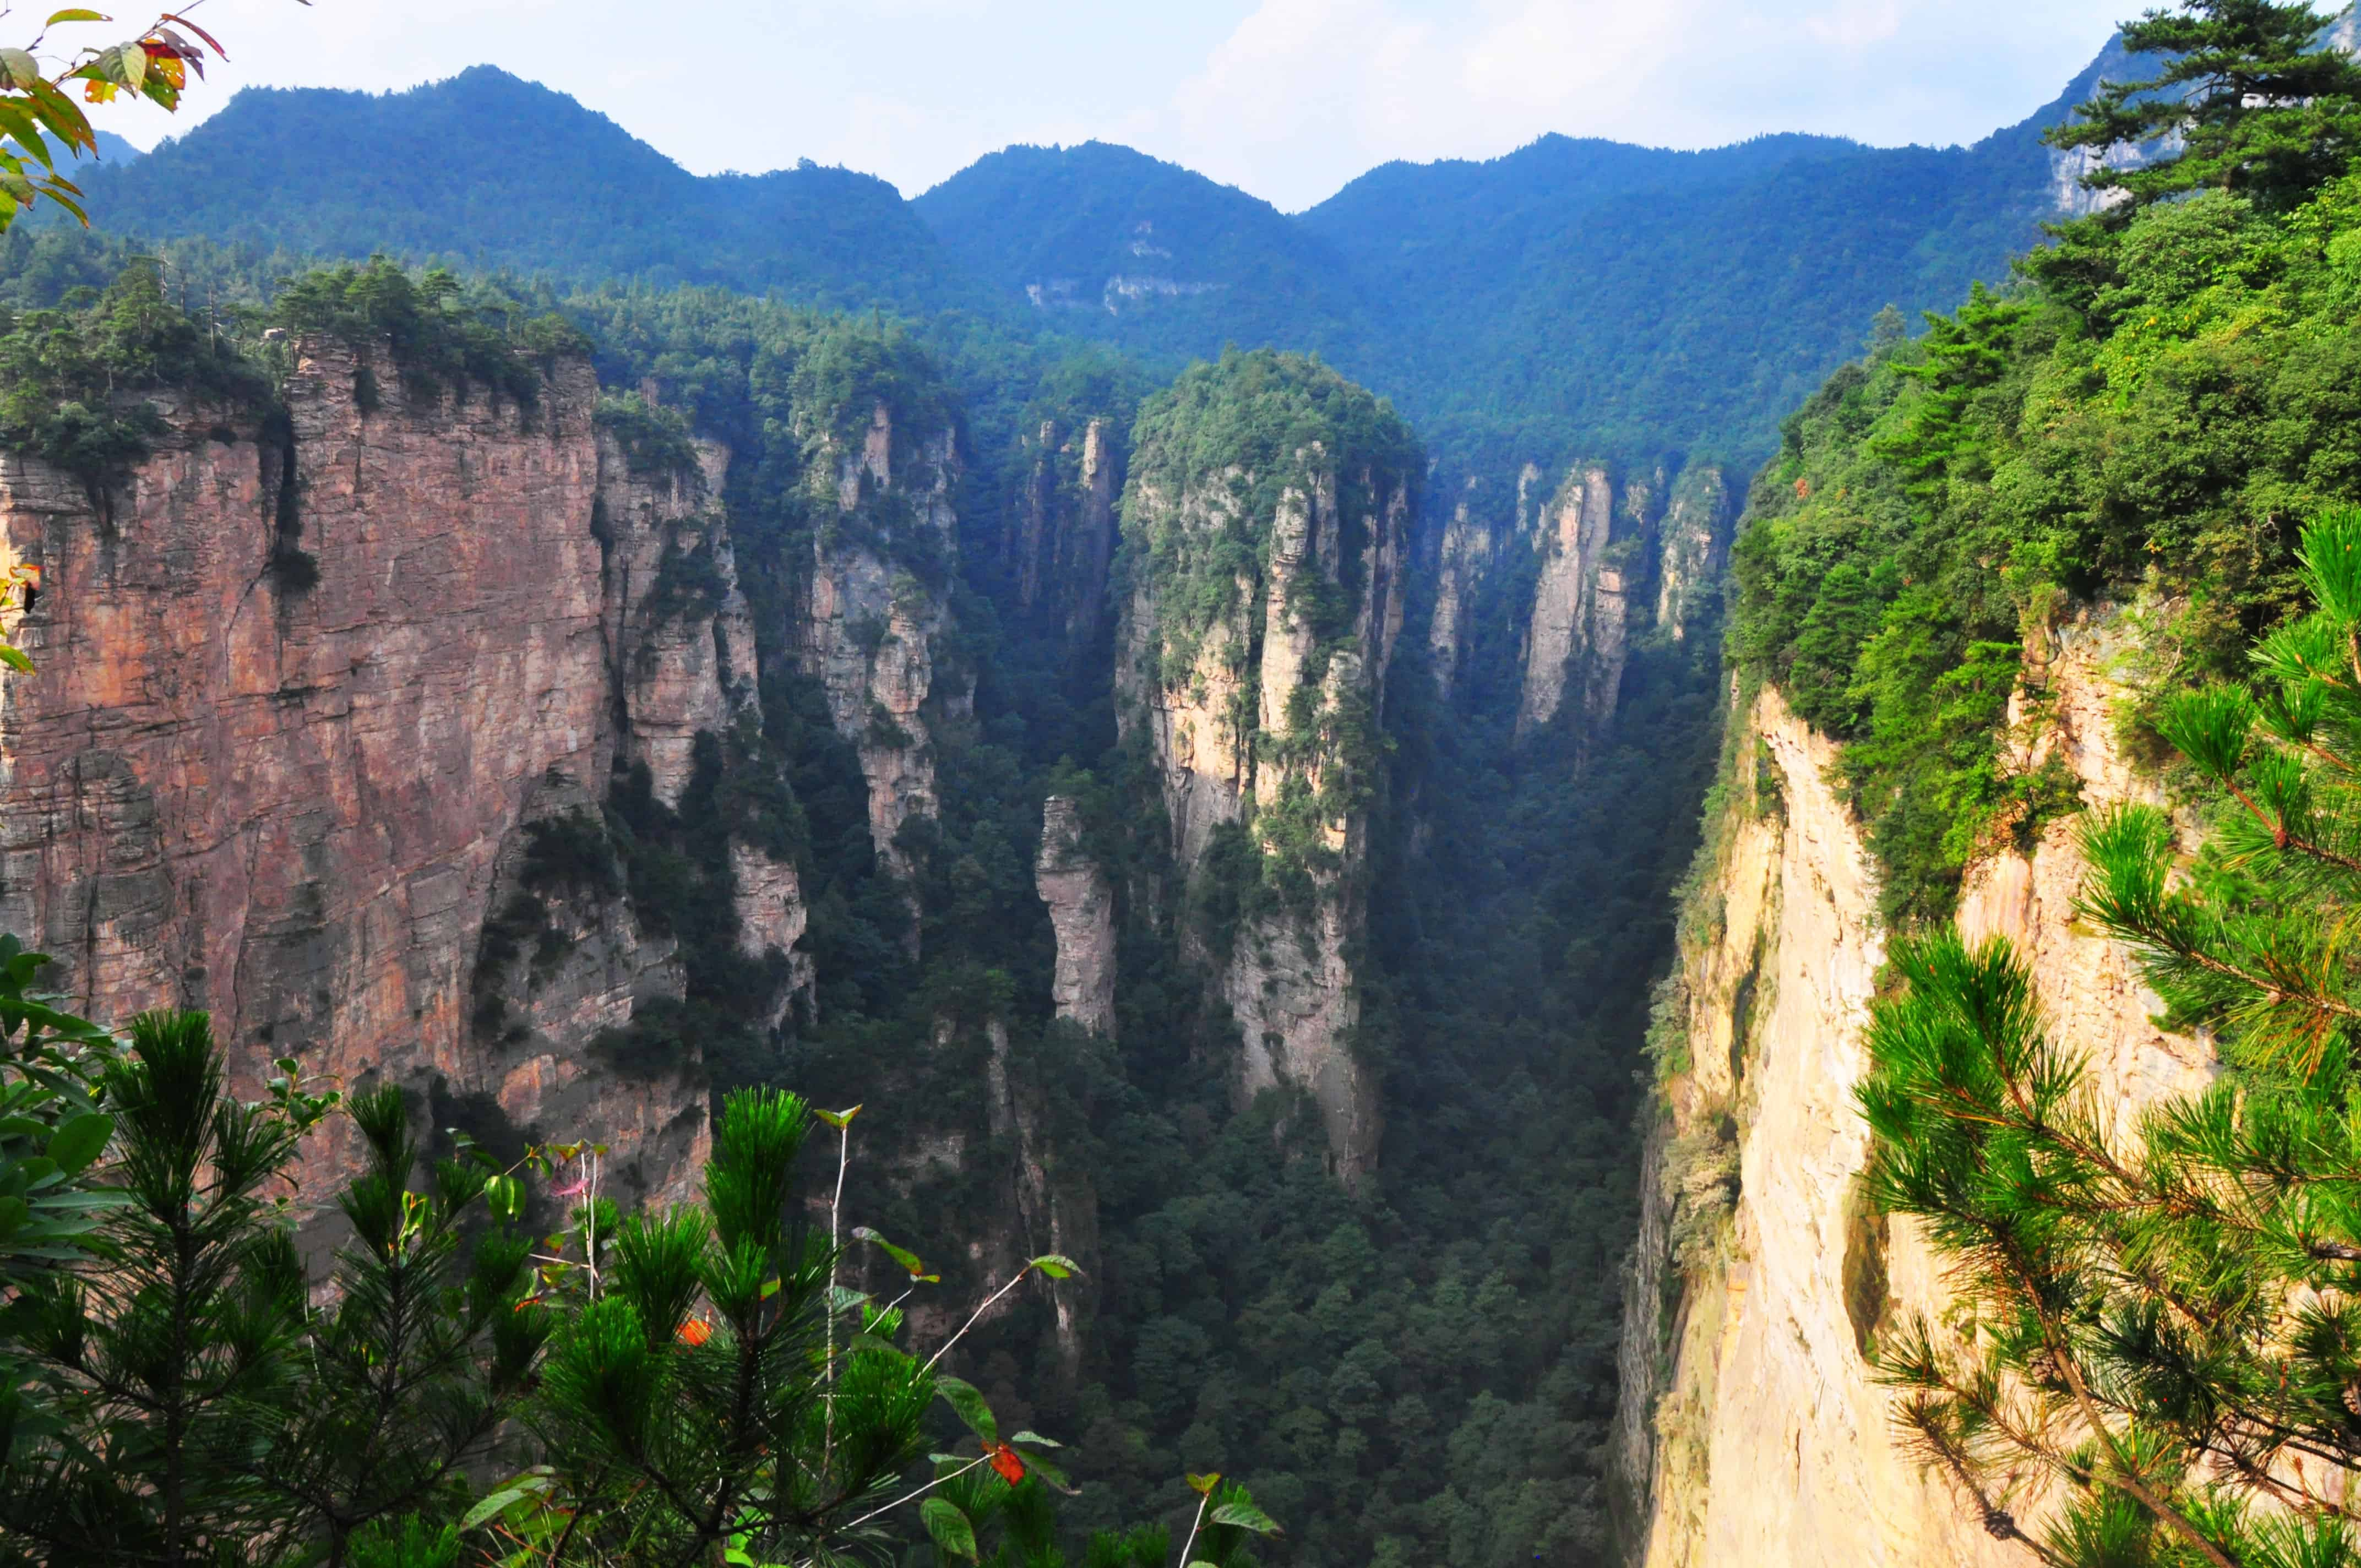 A Complete Guide To Zhangjiajie National Park in China